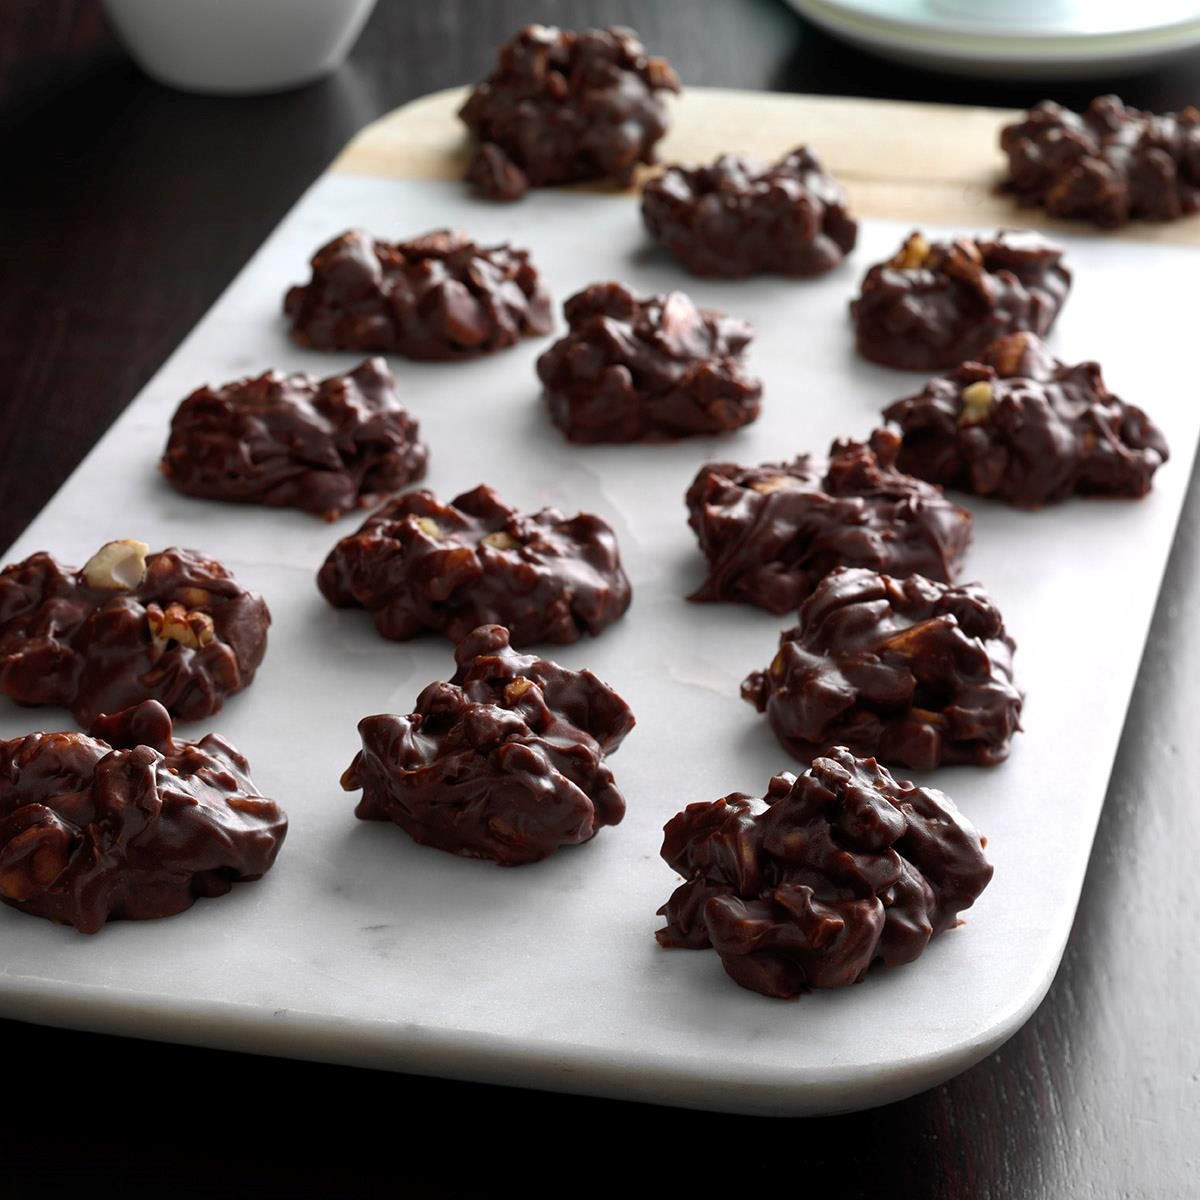 Chocolate Raisin Clusters Dunmore Candy Kitchen: Mixed Nut Clusters Recipe